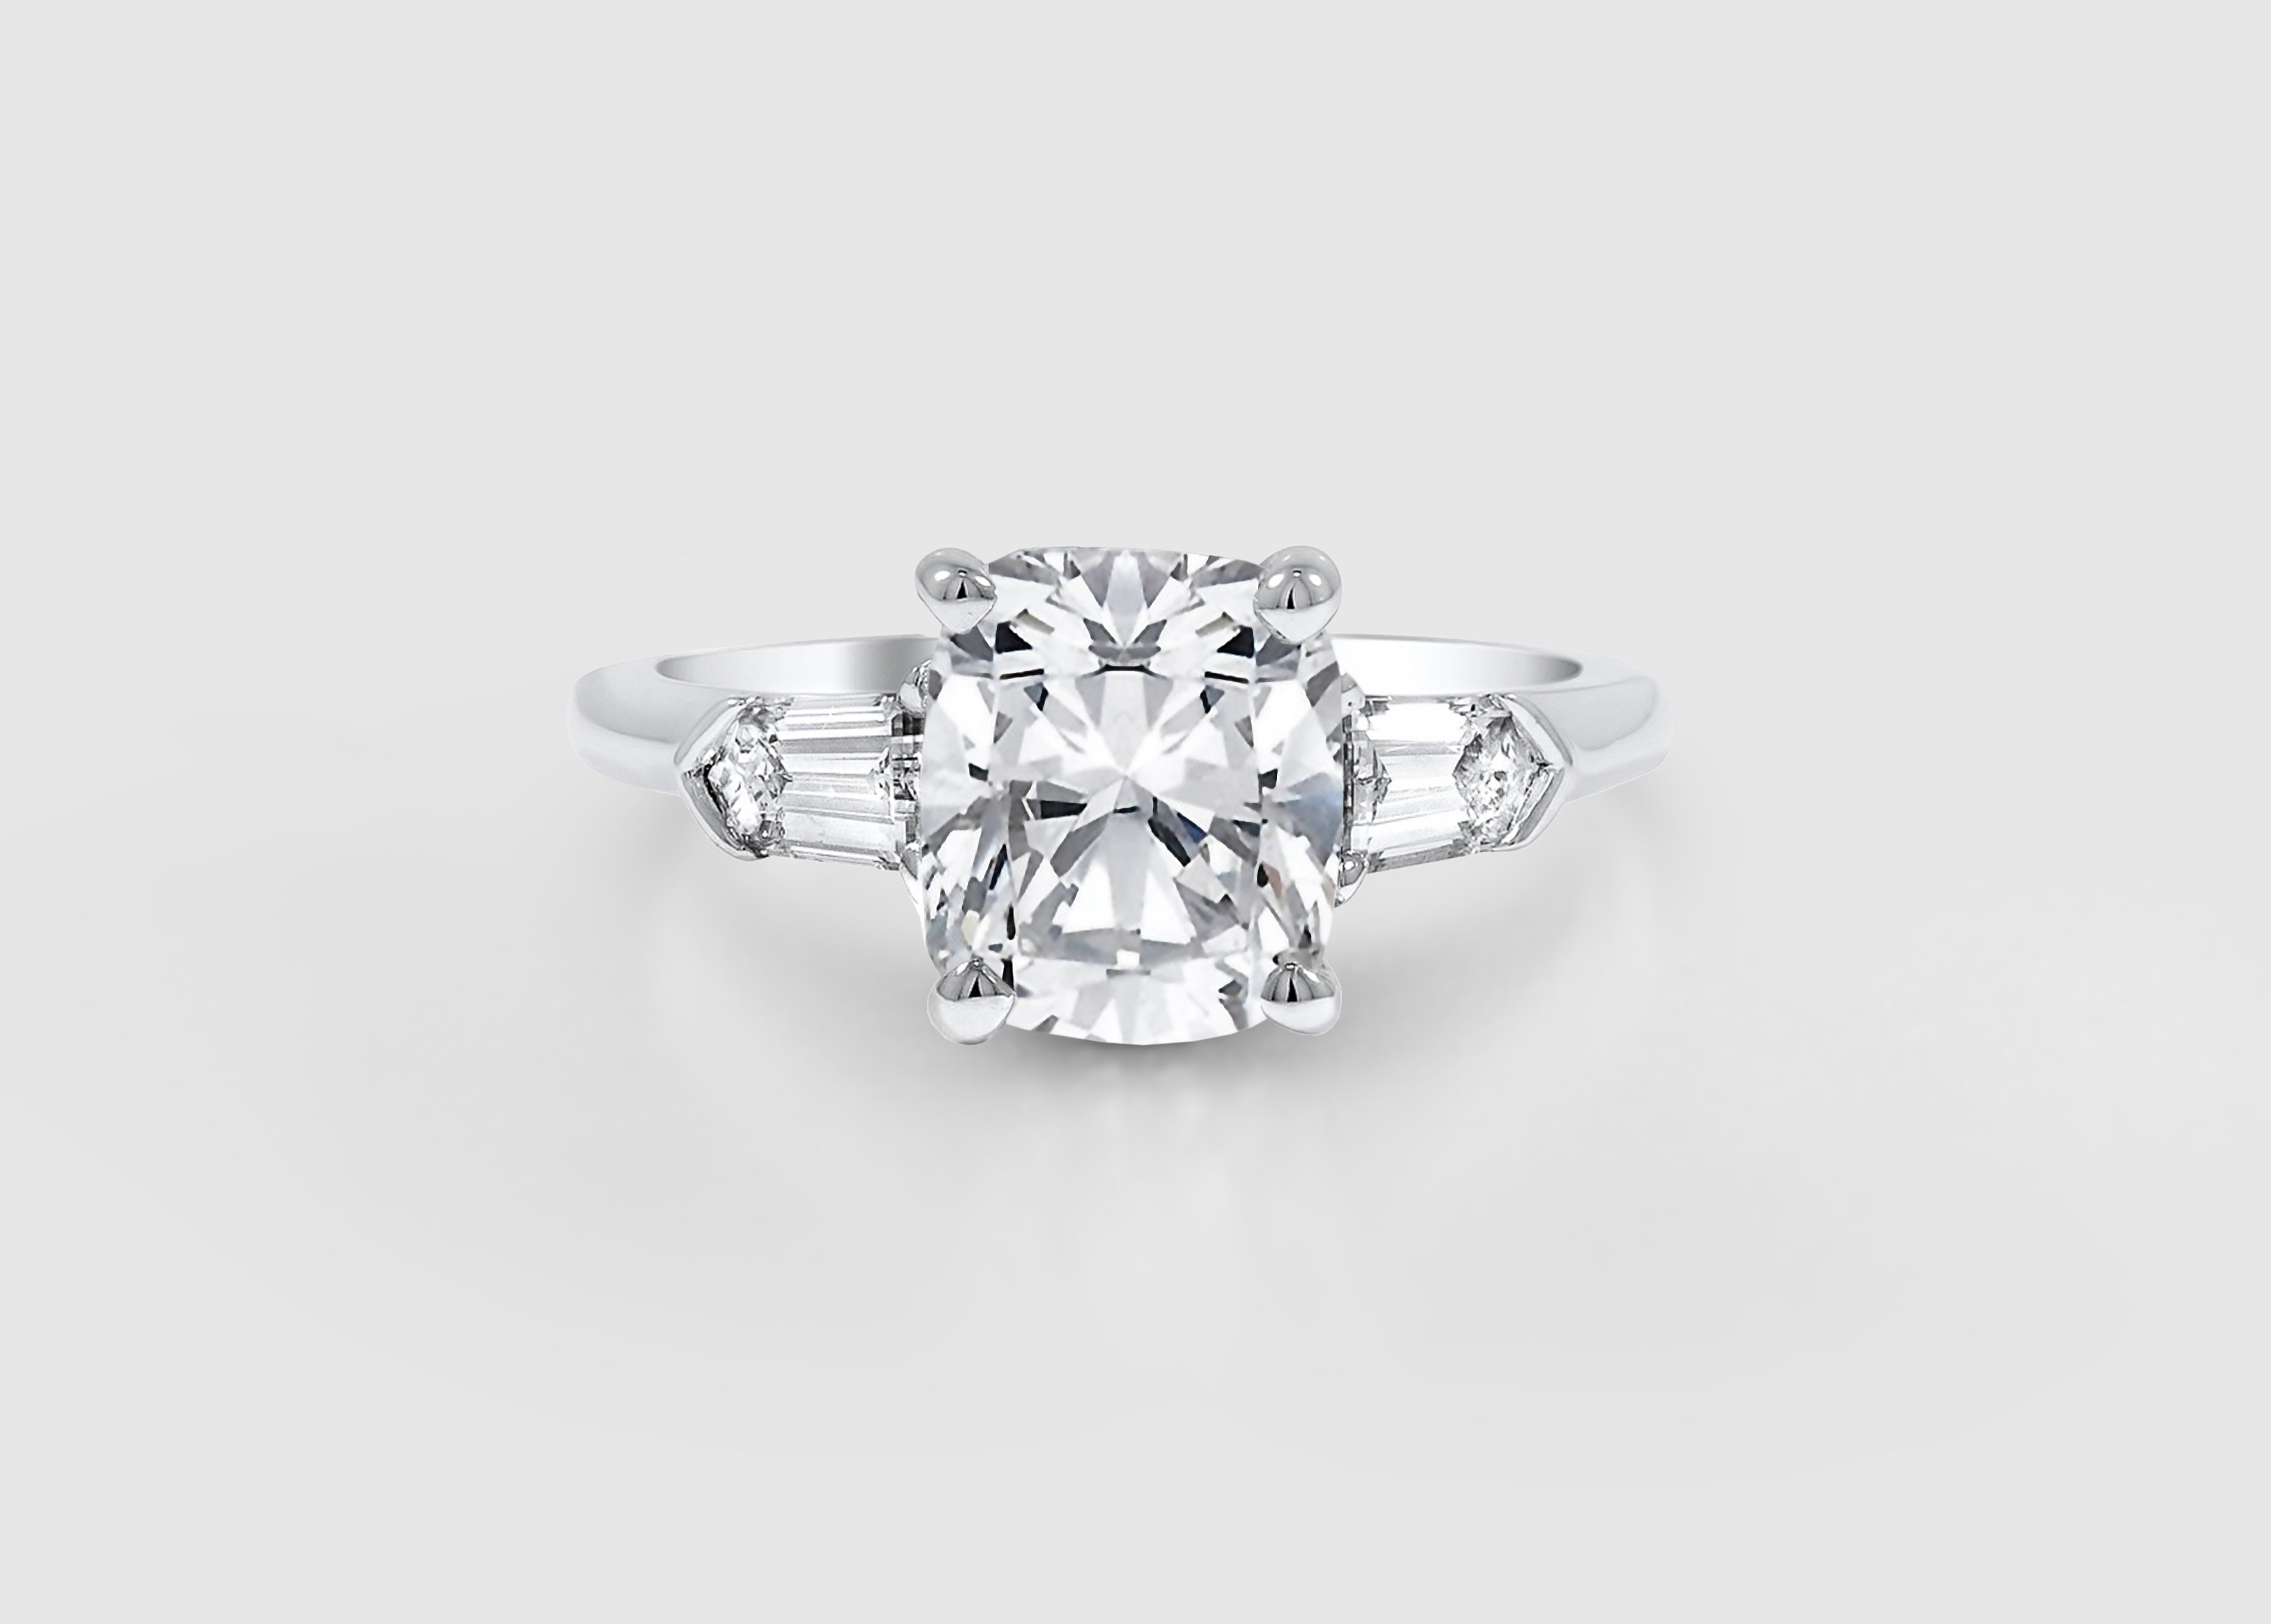 406b1433d Engagement Ring Trends of the Past, Present, and Future | Brilliant Earth